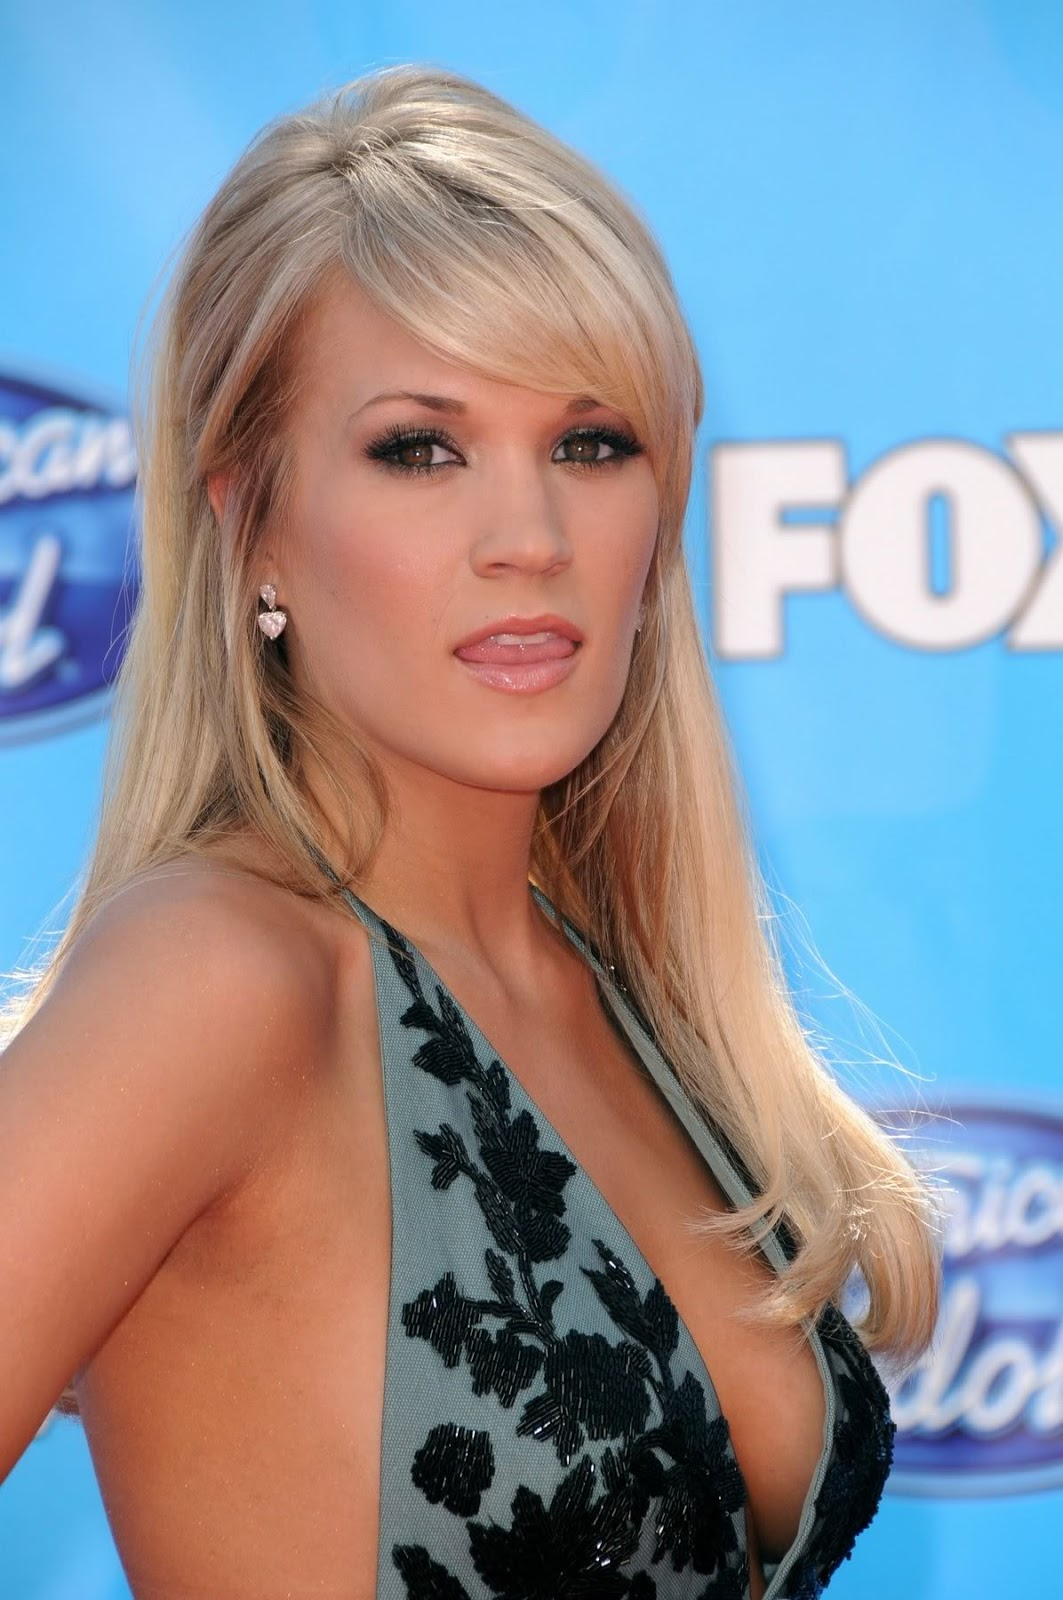 Think, you carrie underwood boob pics something is